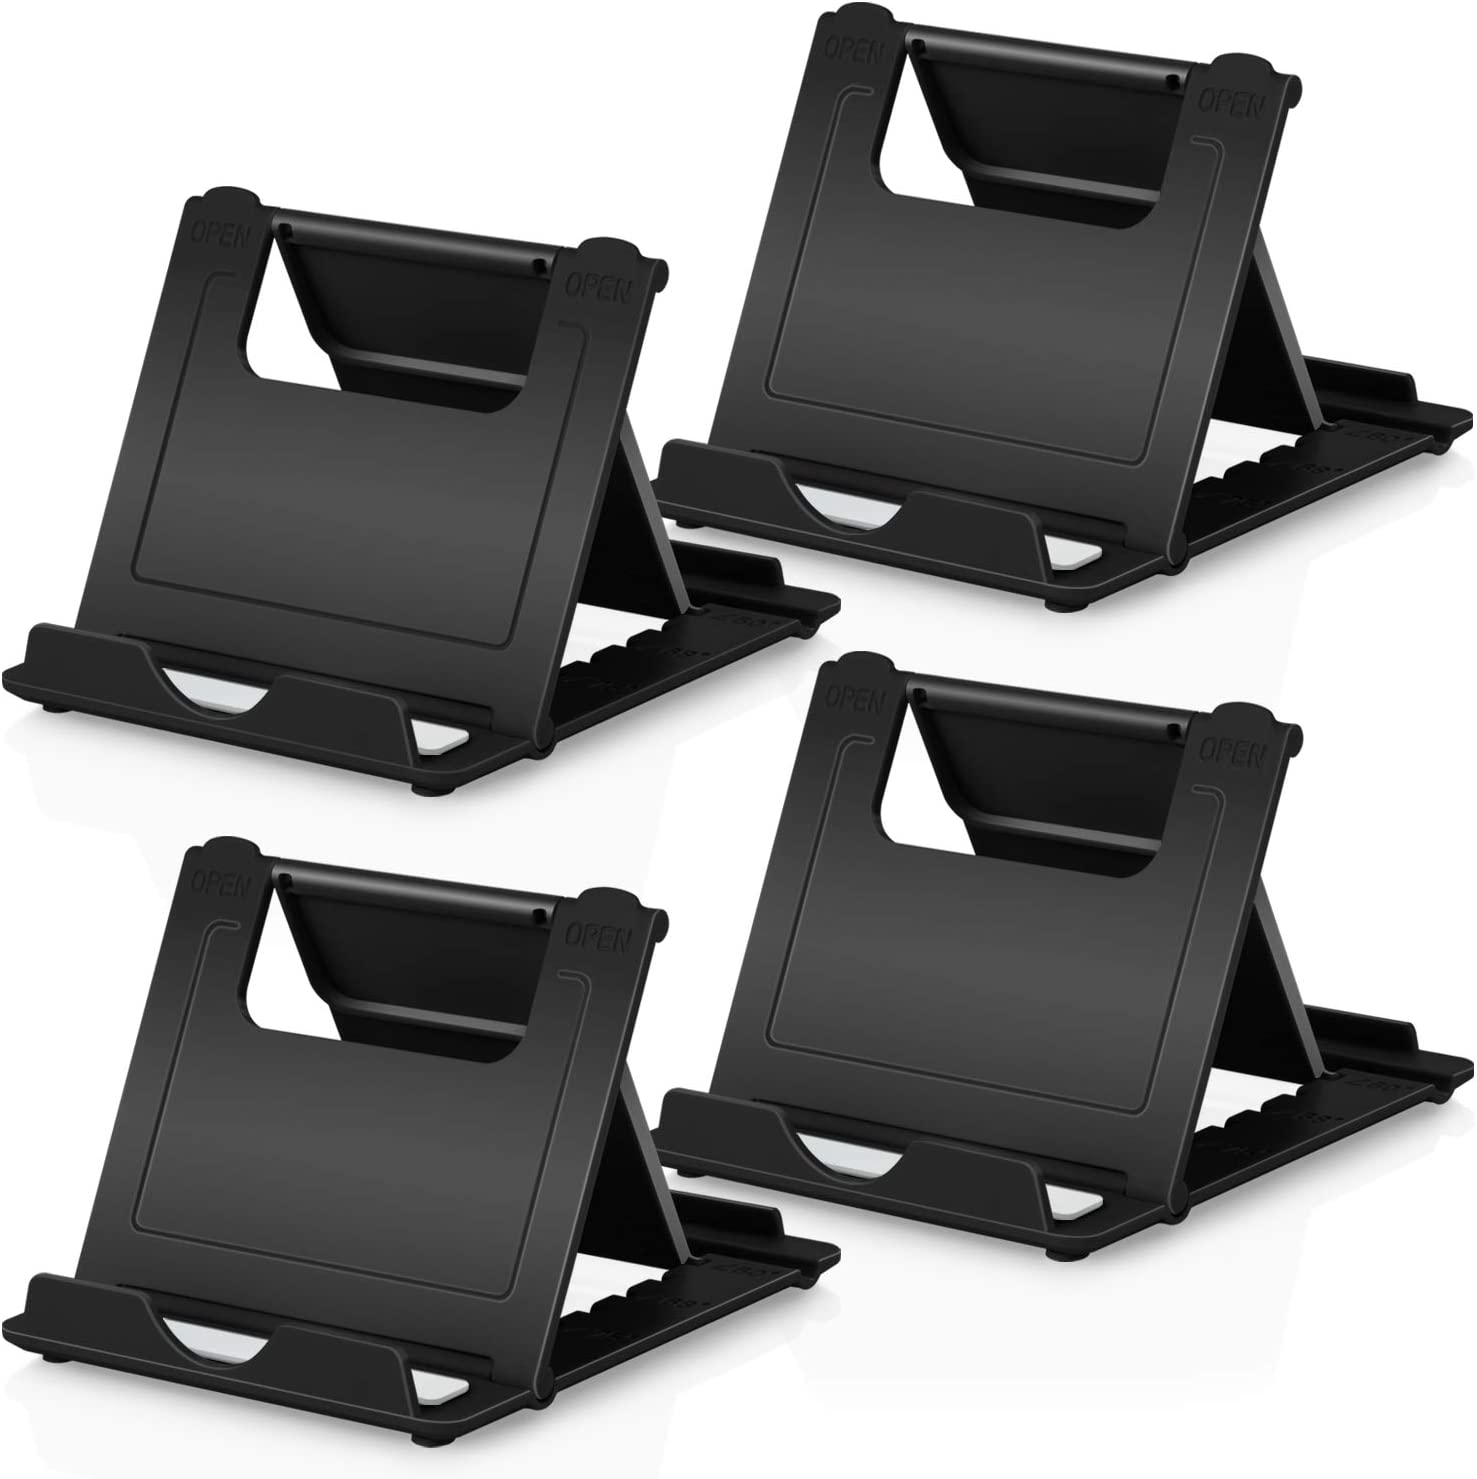 """Cell Phone Stands Holder, 4Pack Aupek Foldable Adjustable Lightweight Desktop Dock Android Phone Holder for Desk Compatible Devices (4-7.9"""") iPhone 11 Xs Max XR 8 7 6 Samsung Galaxy S10 S9 S8- Black"""